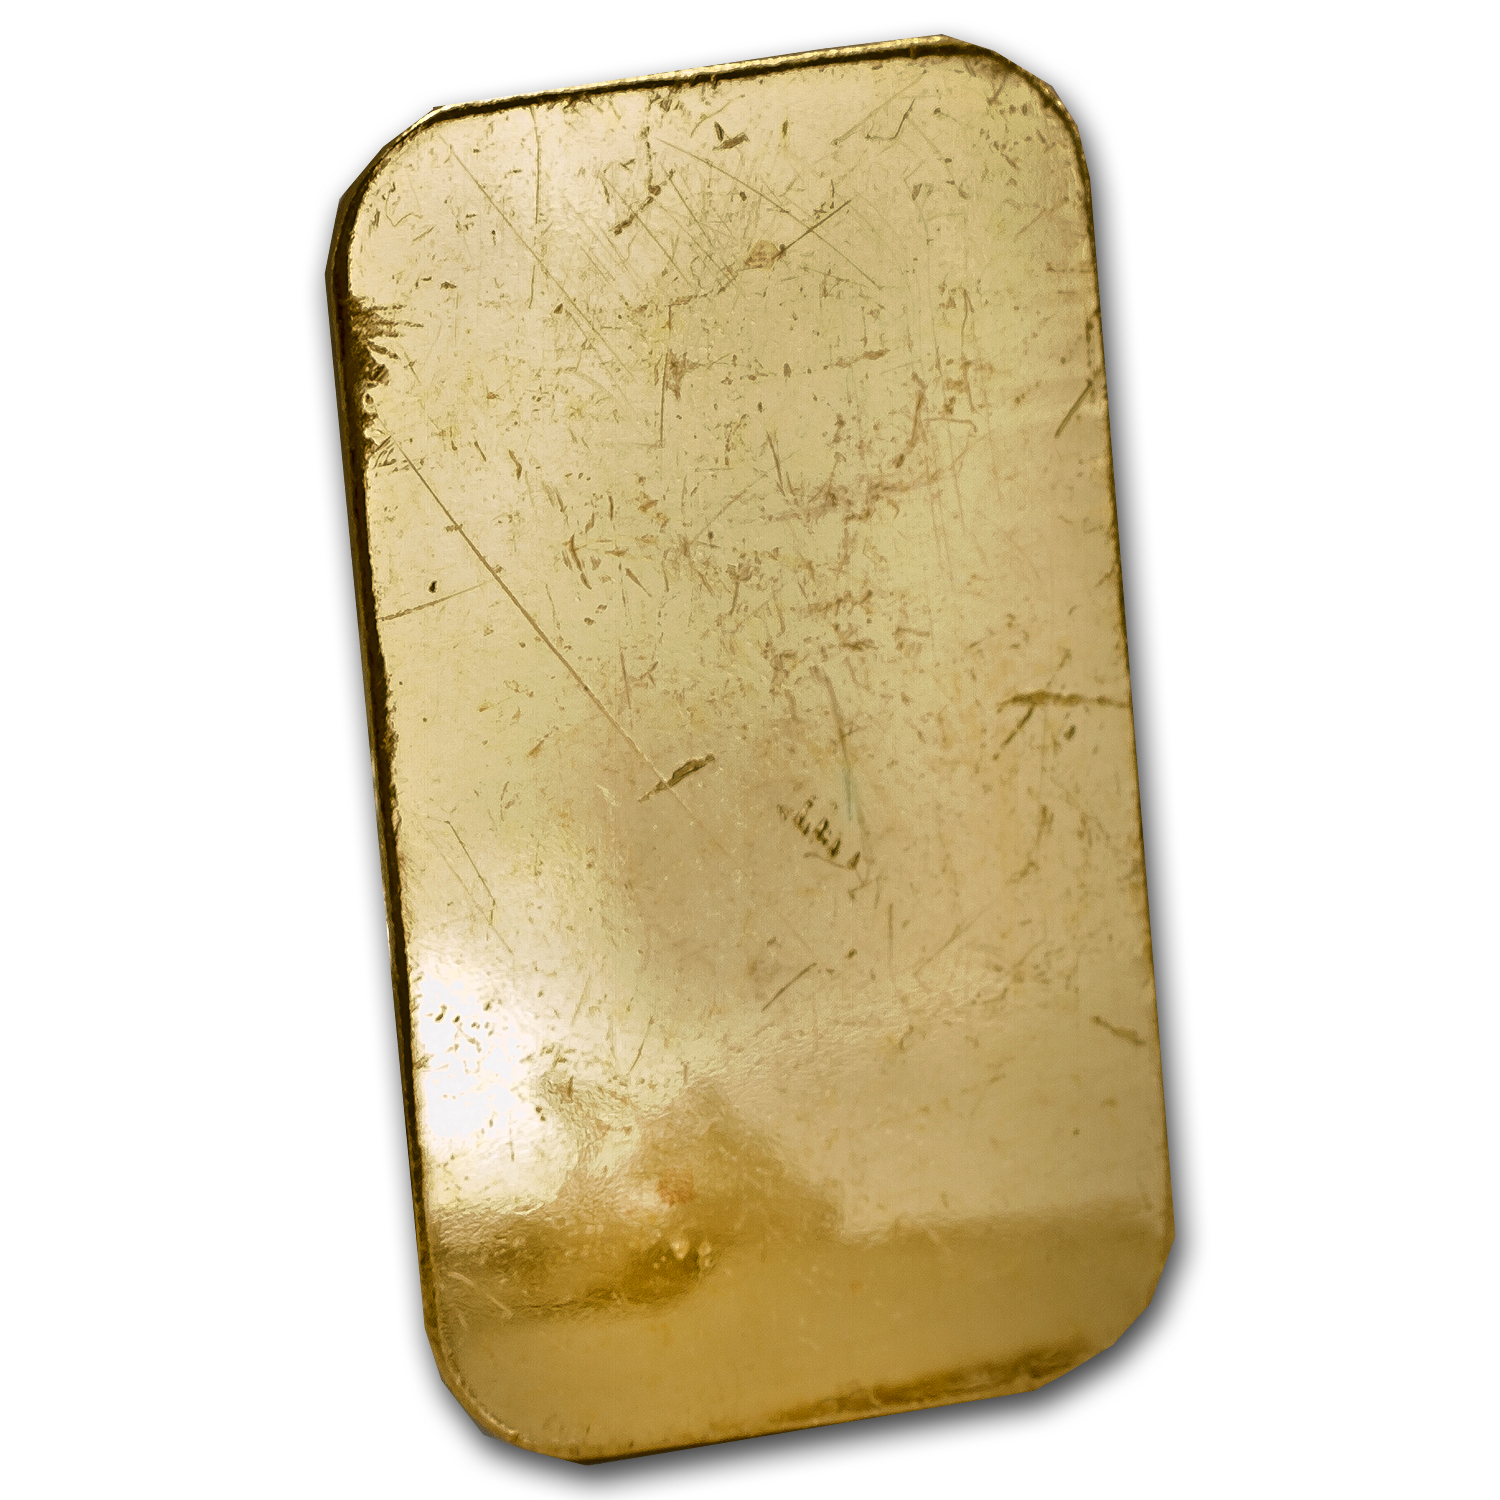 10 gram Gold Bars - UBS (No Assay Card)